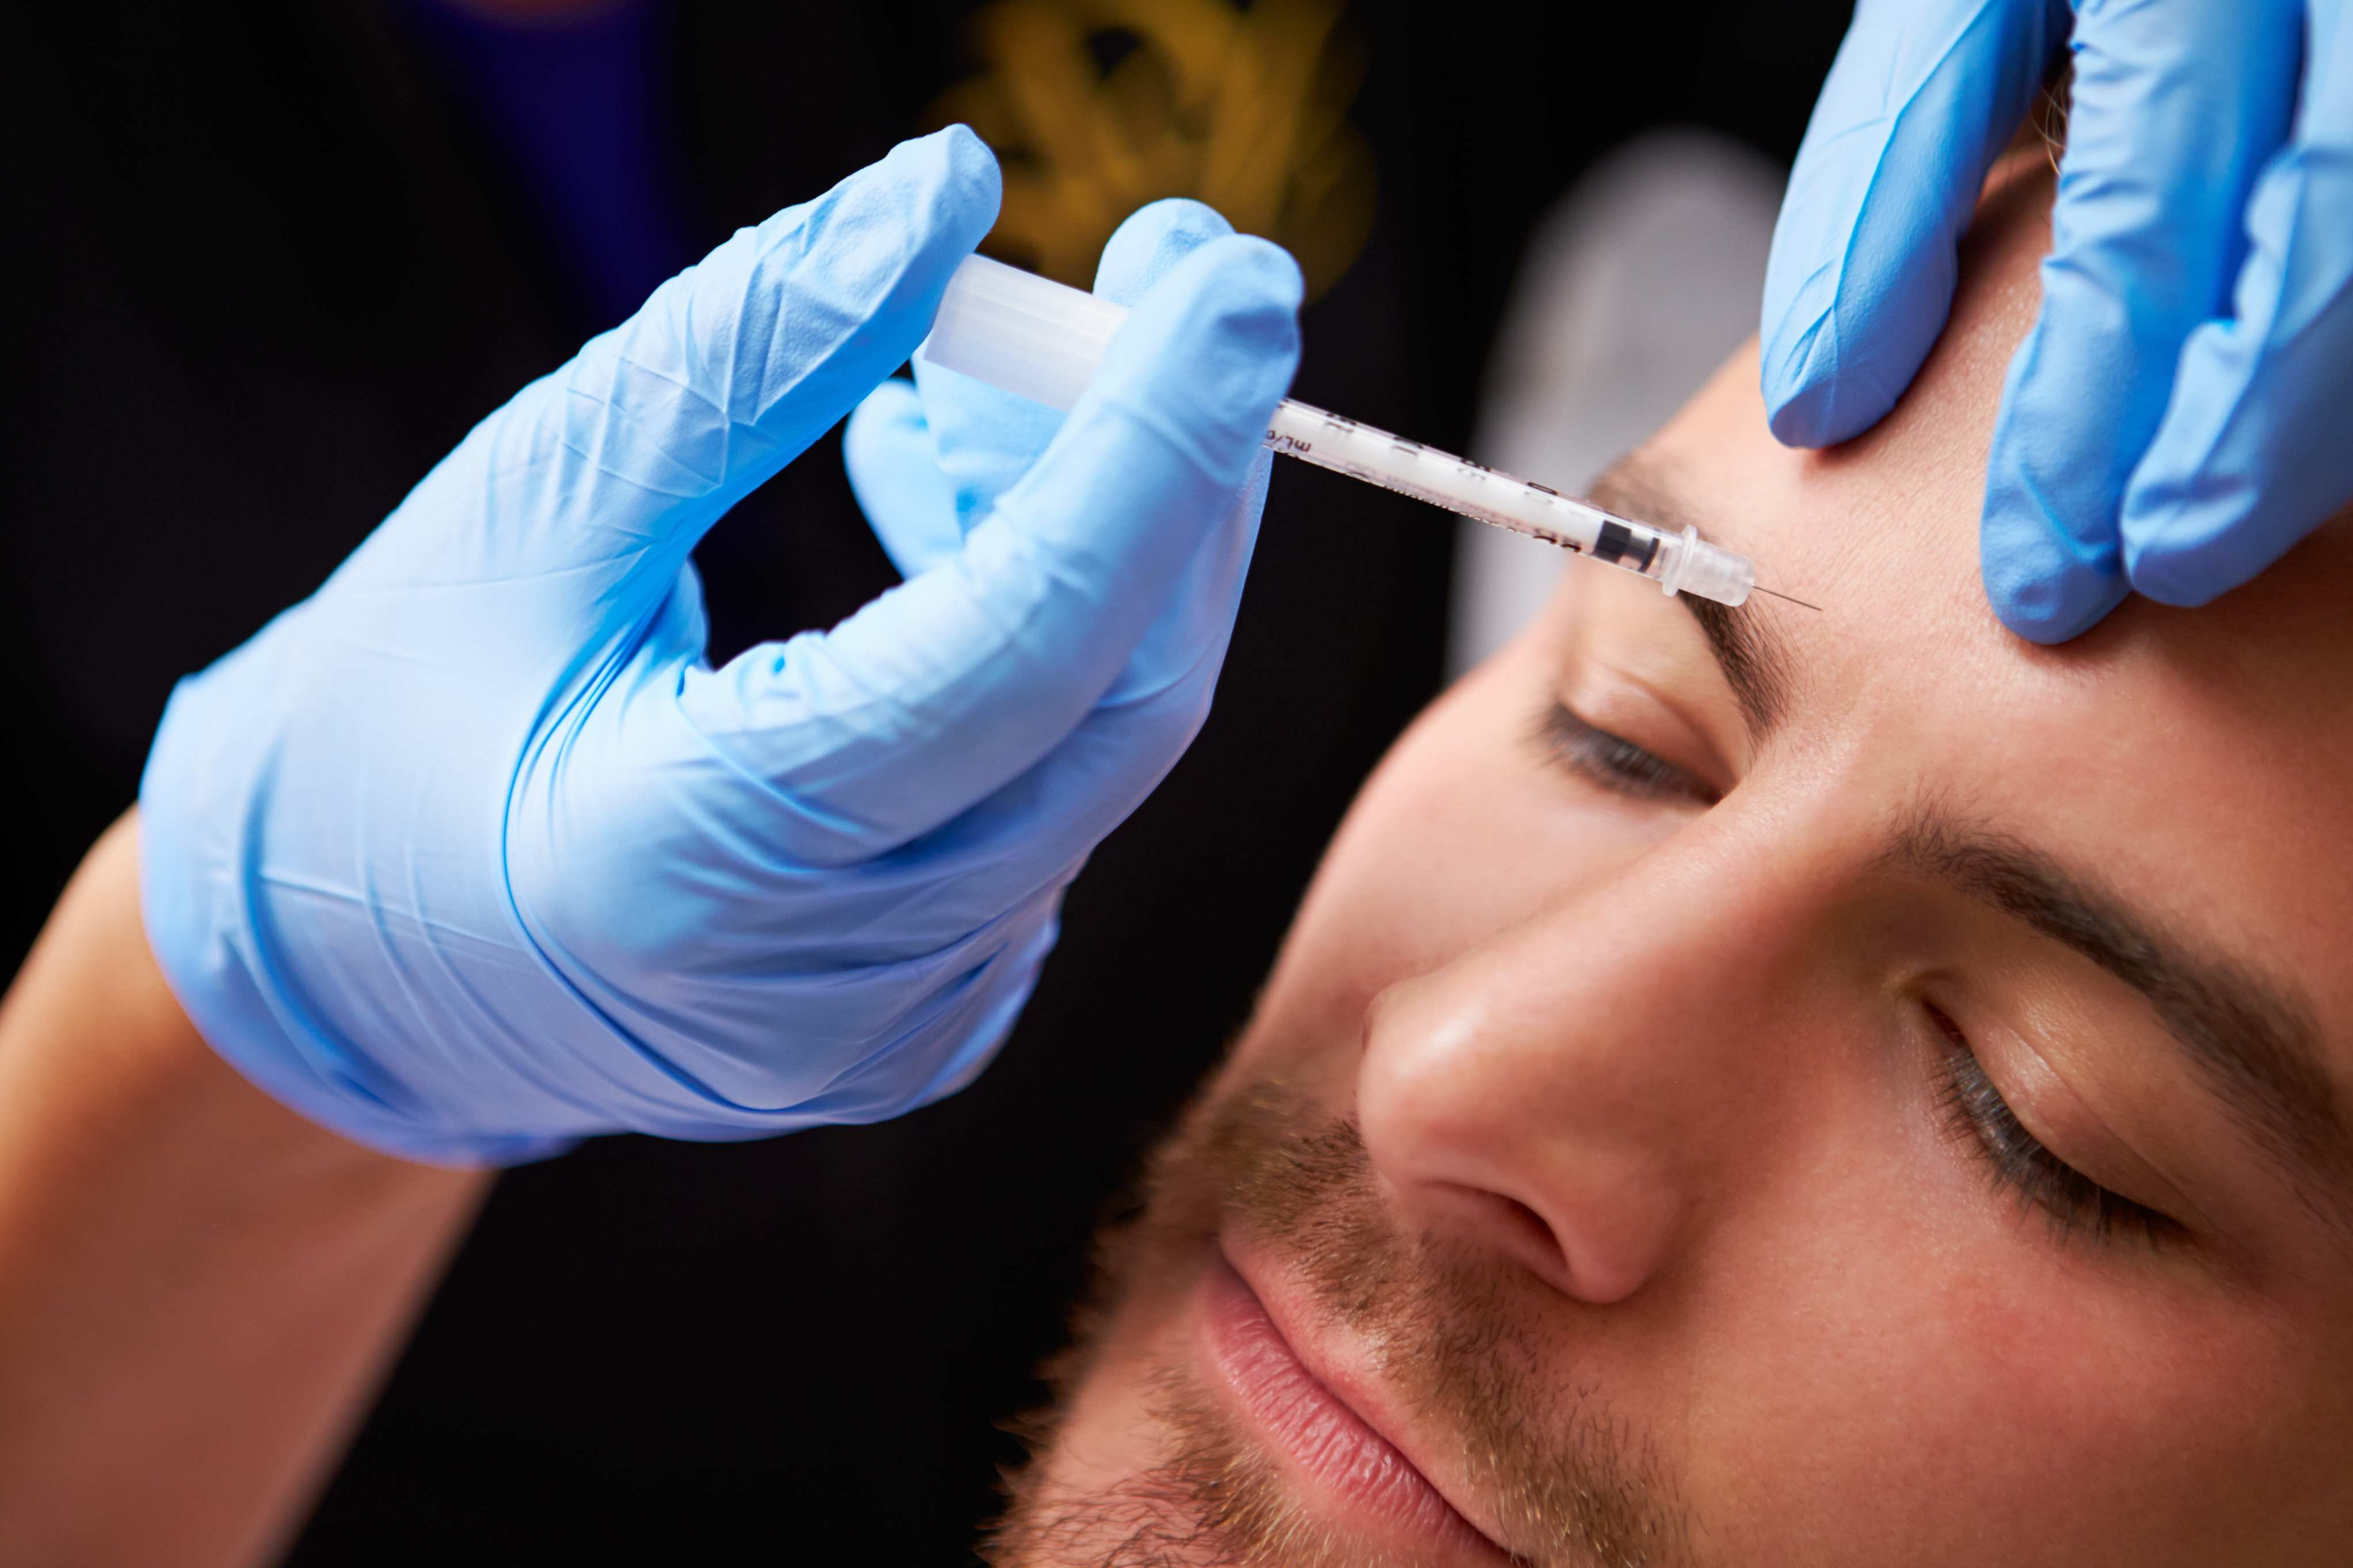 A man getting Botox injections